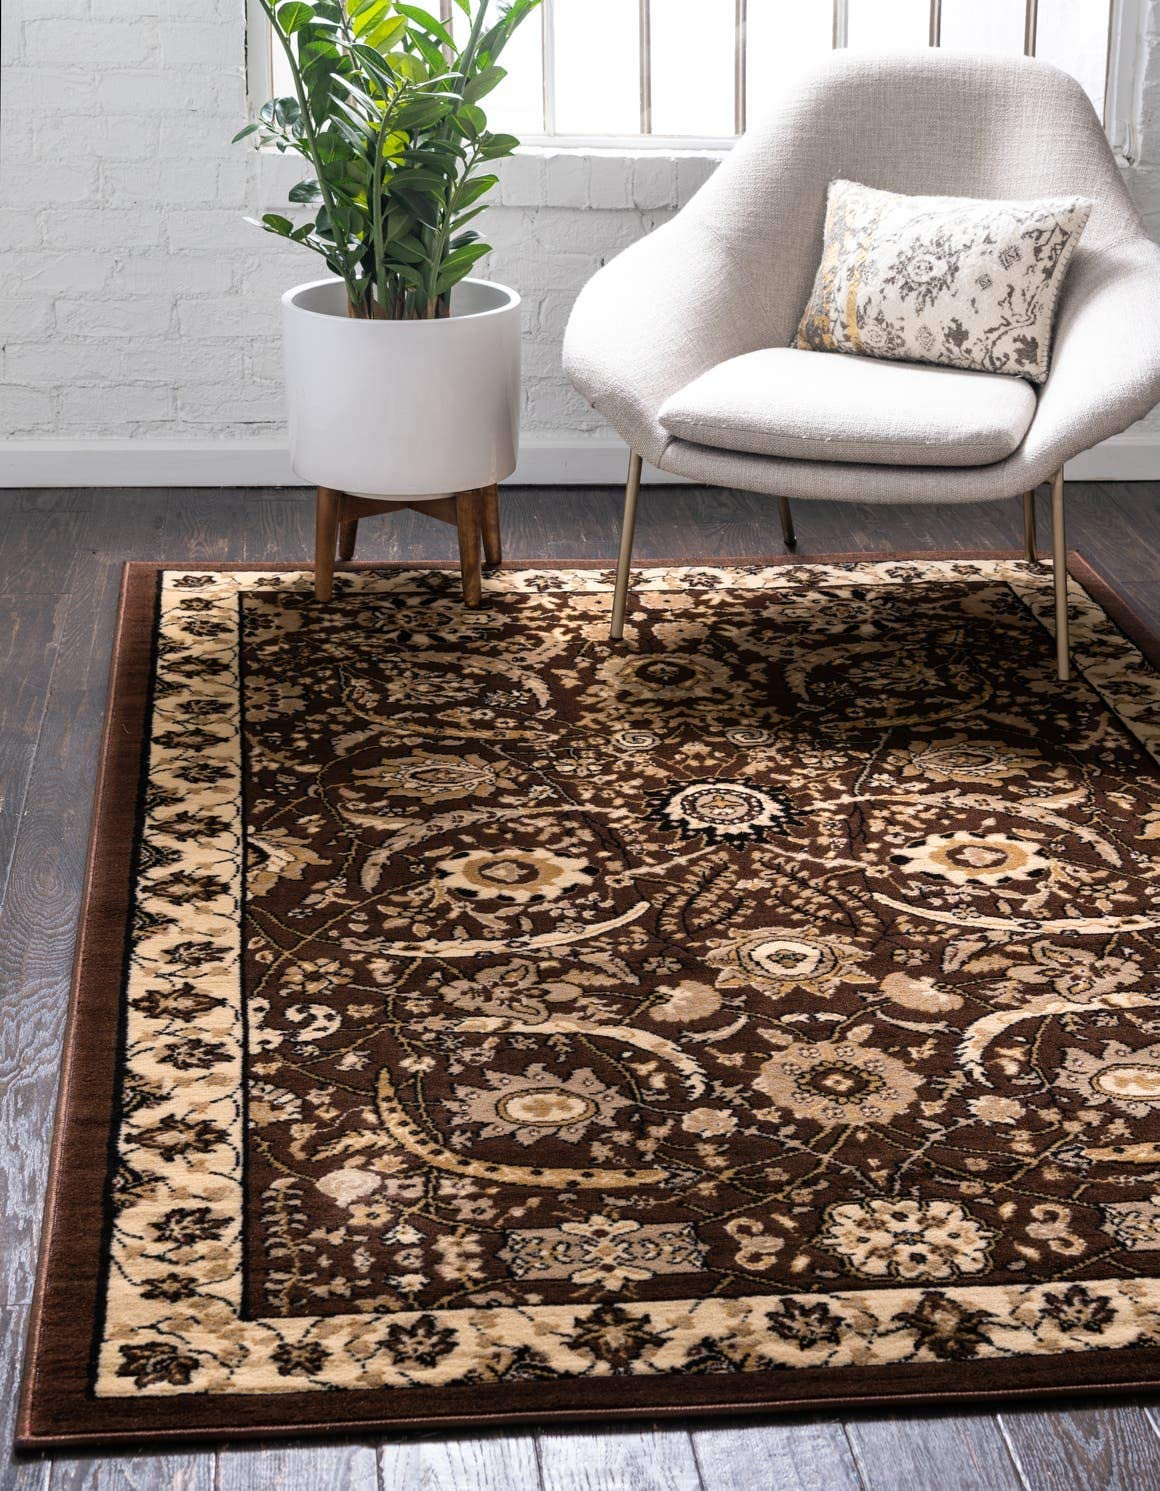 Unique Loom Espahan Collection Classic Traditional Brown Area Rug 6 0 x 9 0